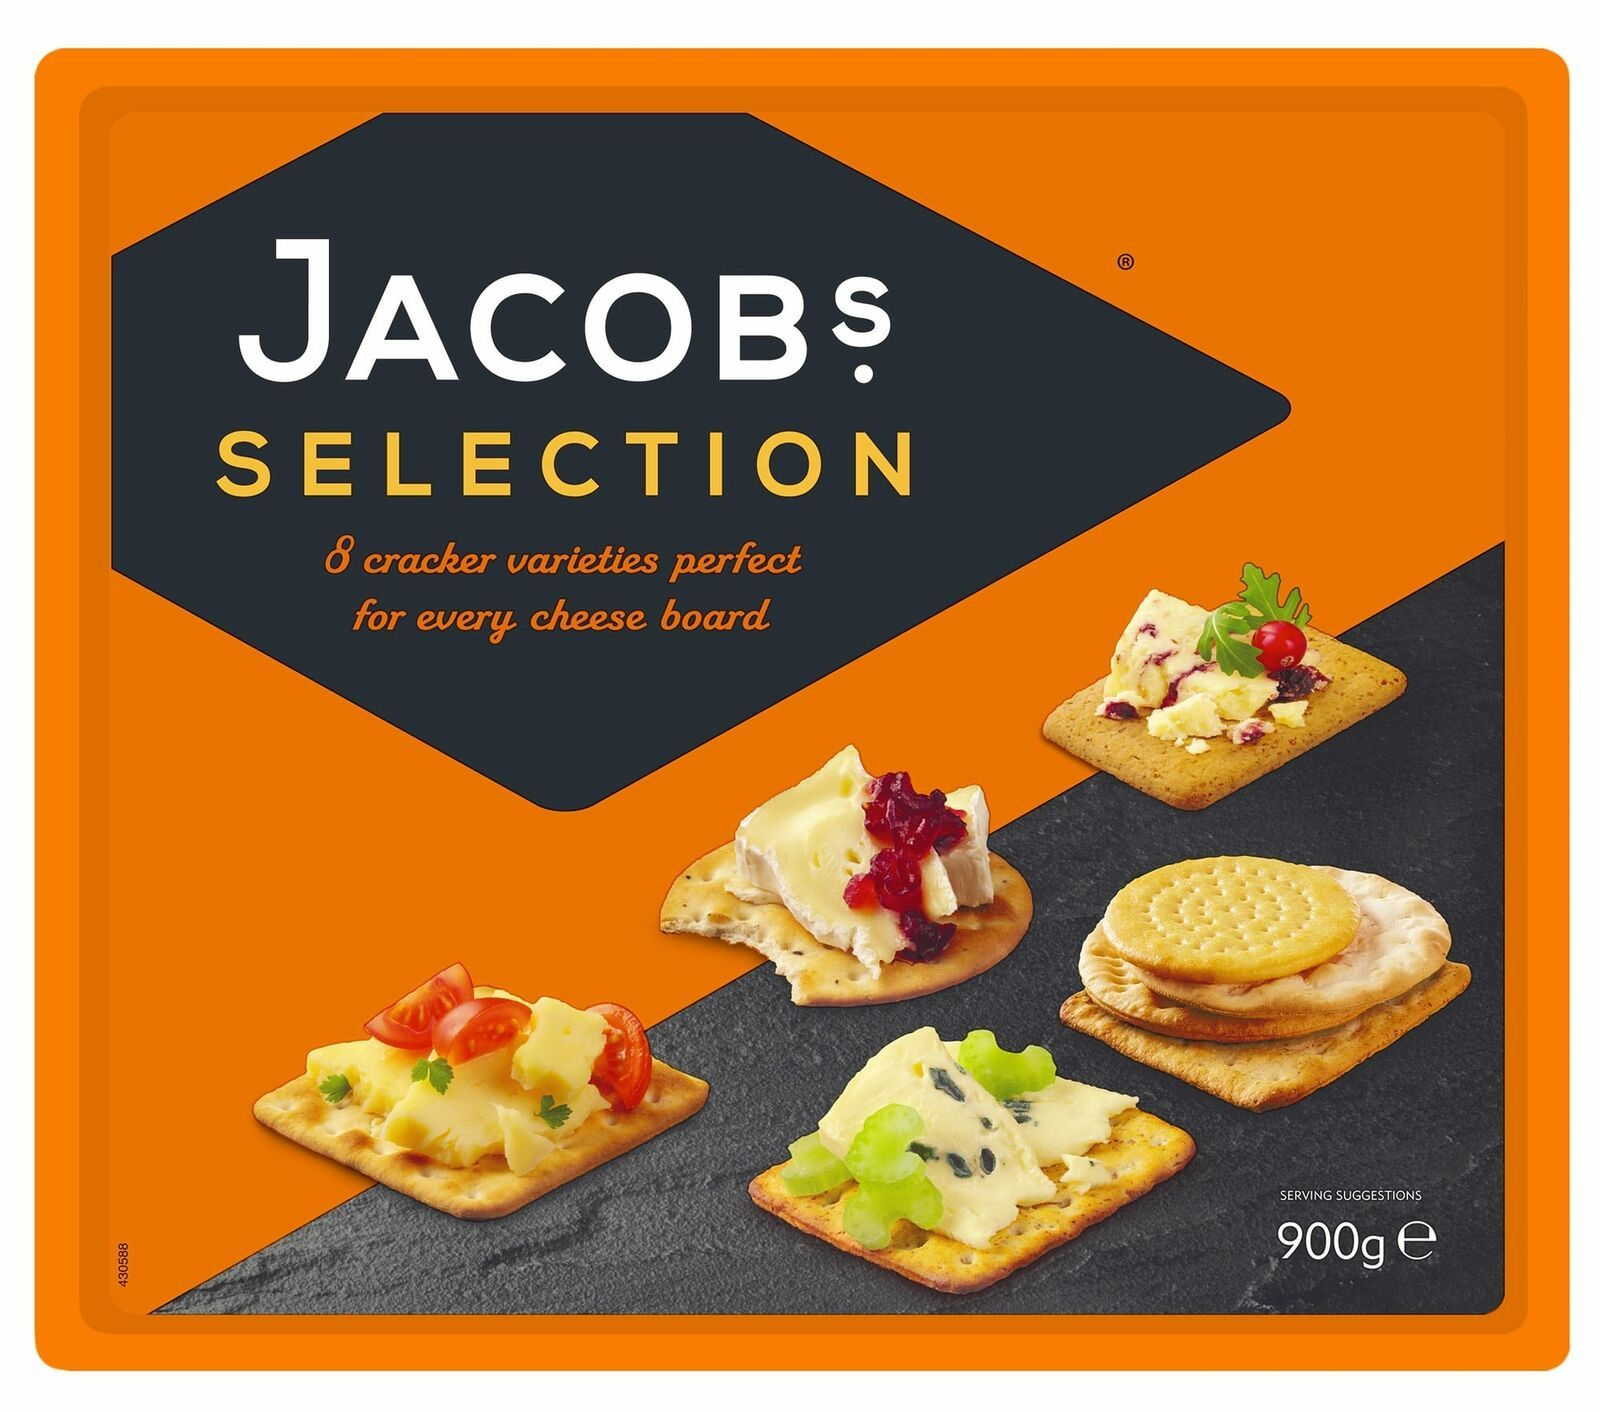 Jacob's Biscuits For Cheese (900g) image